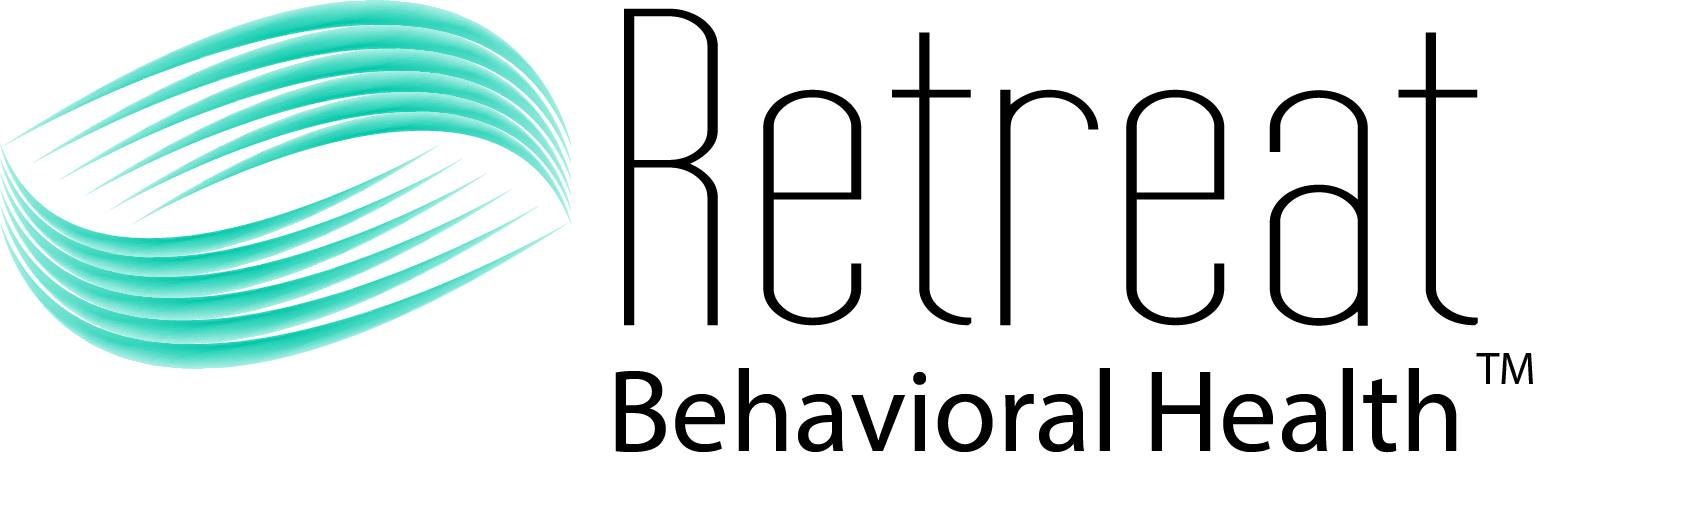 retreat_logo_f68983fa-7c44-4be0-9384-6345577649d8111.jpg